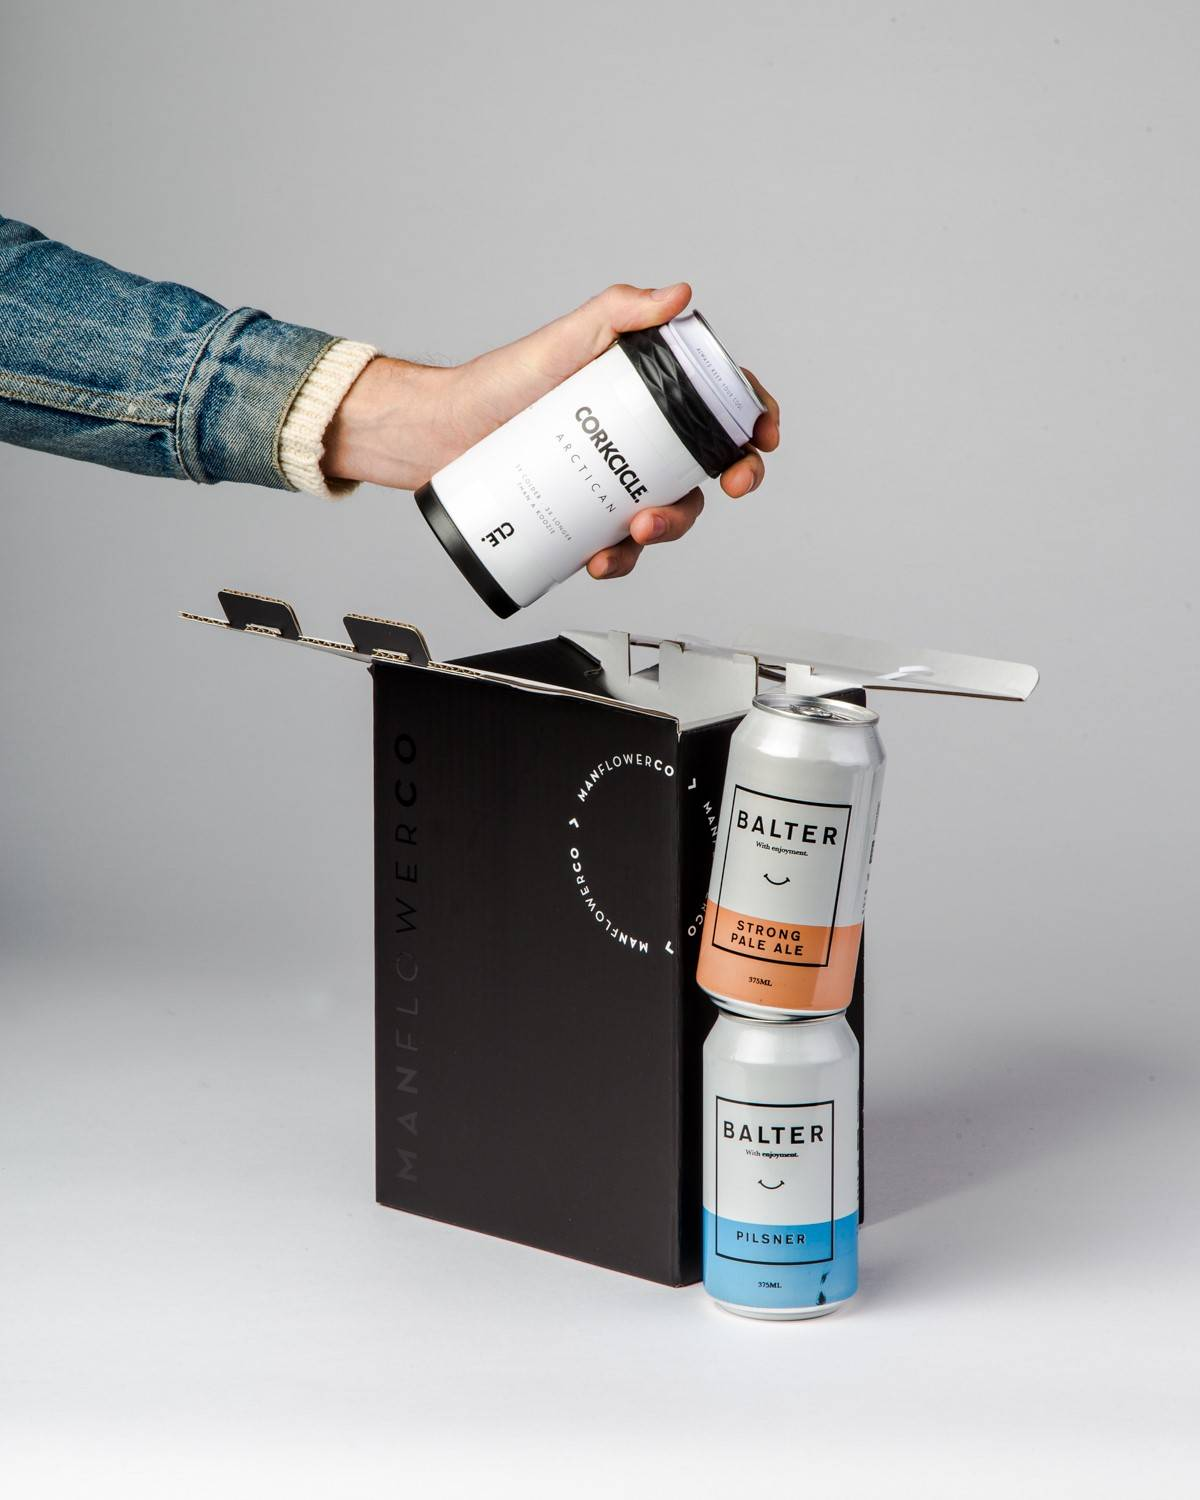 Corkcicle + Beer, part of Manflower Co's range of holiday gifts for men.